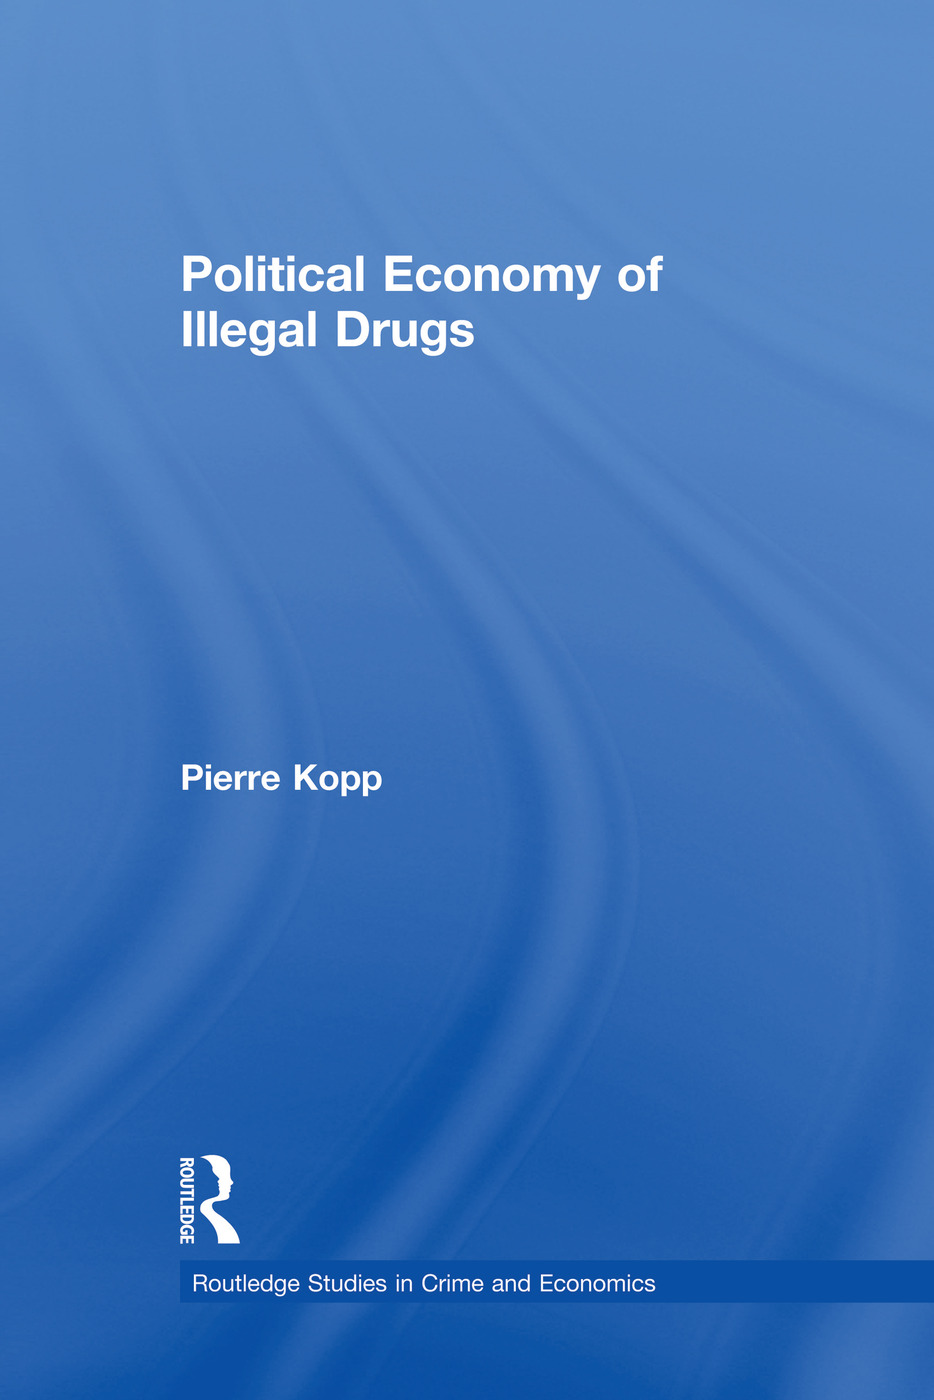 Political Economy of Illegal Drugs